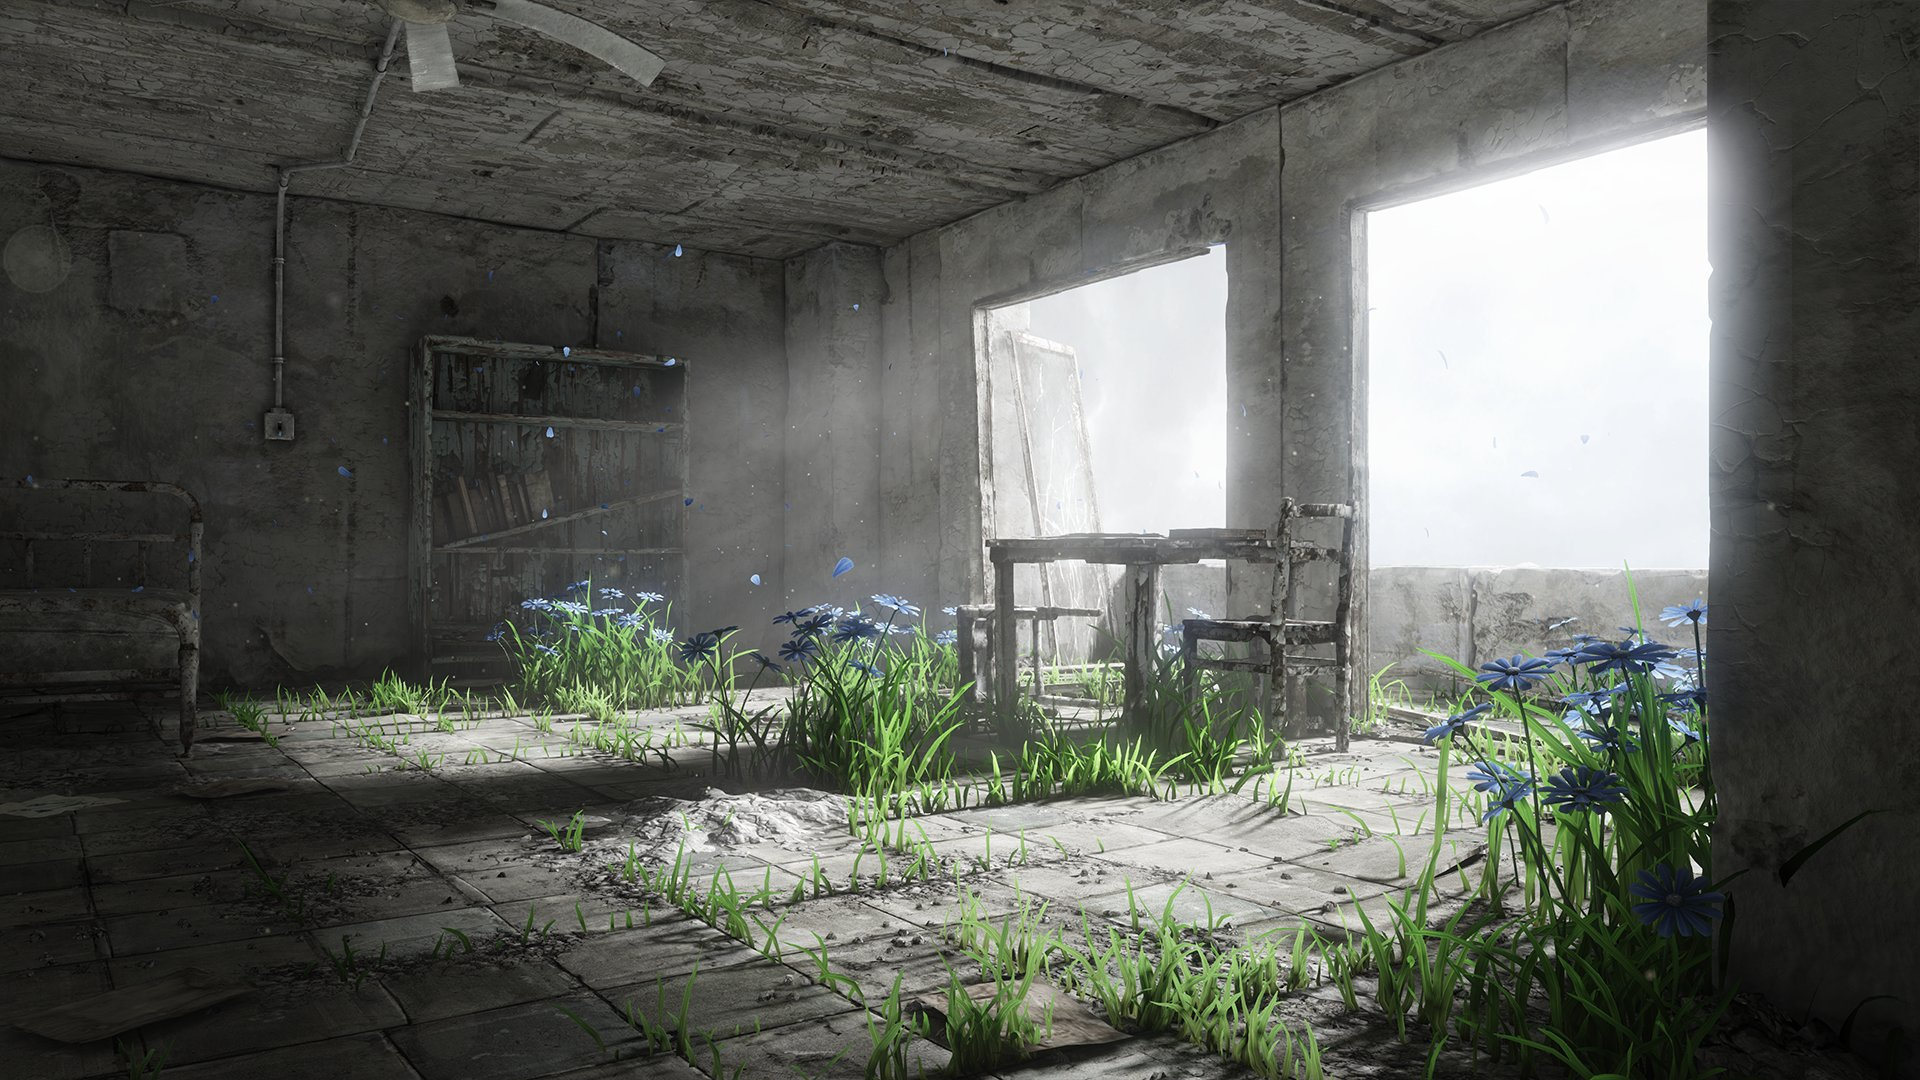 Homesick Review: A Tale of Sorrow and Sunlight